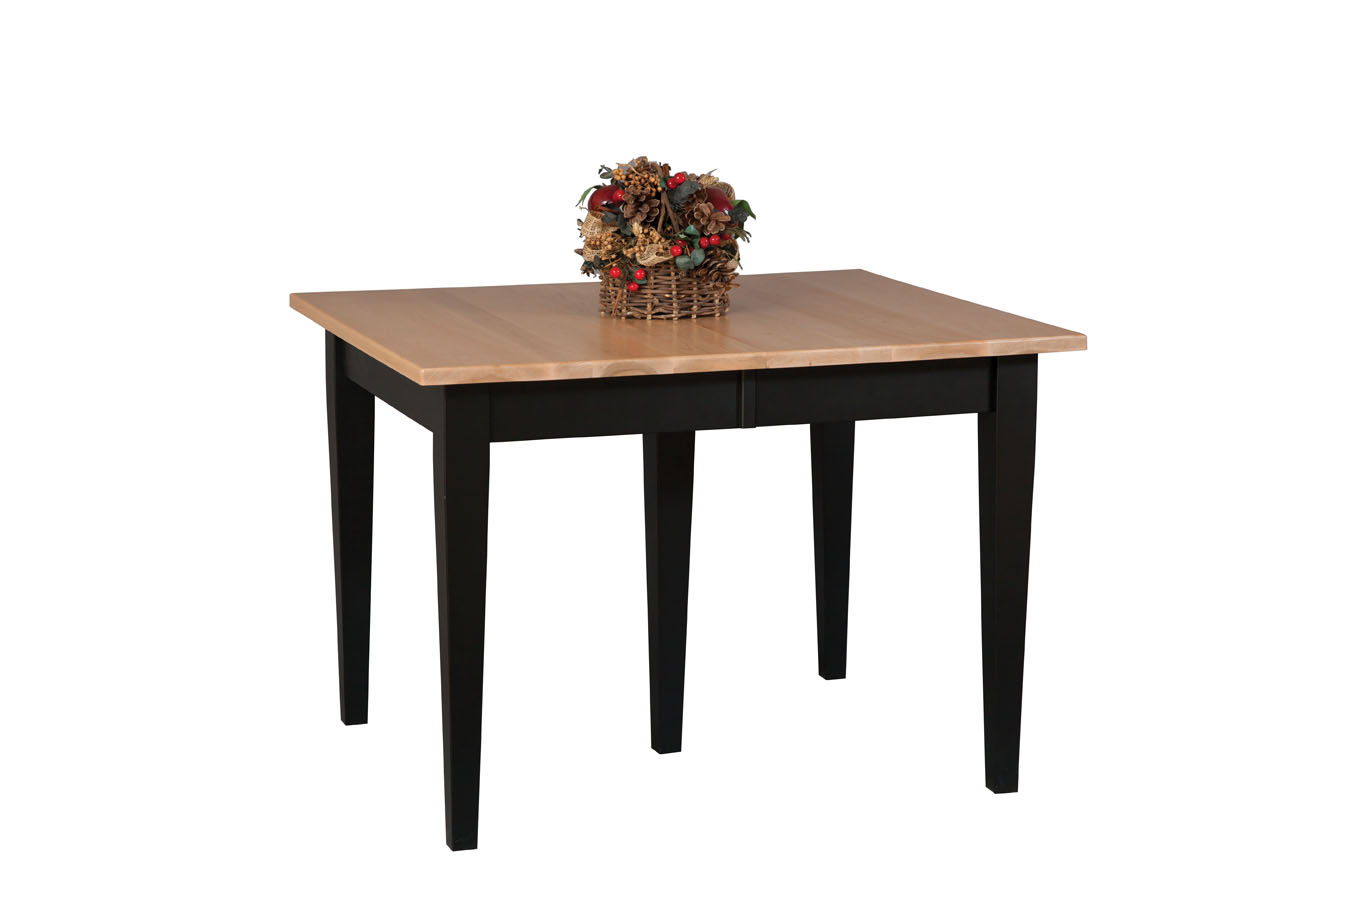 36 x 54 table amish furniture connections amish